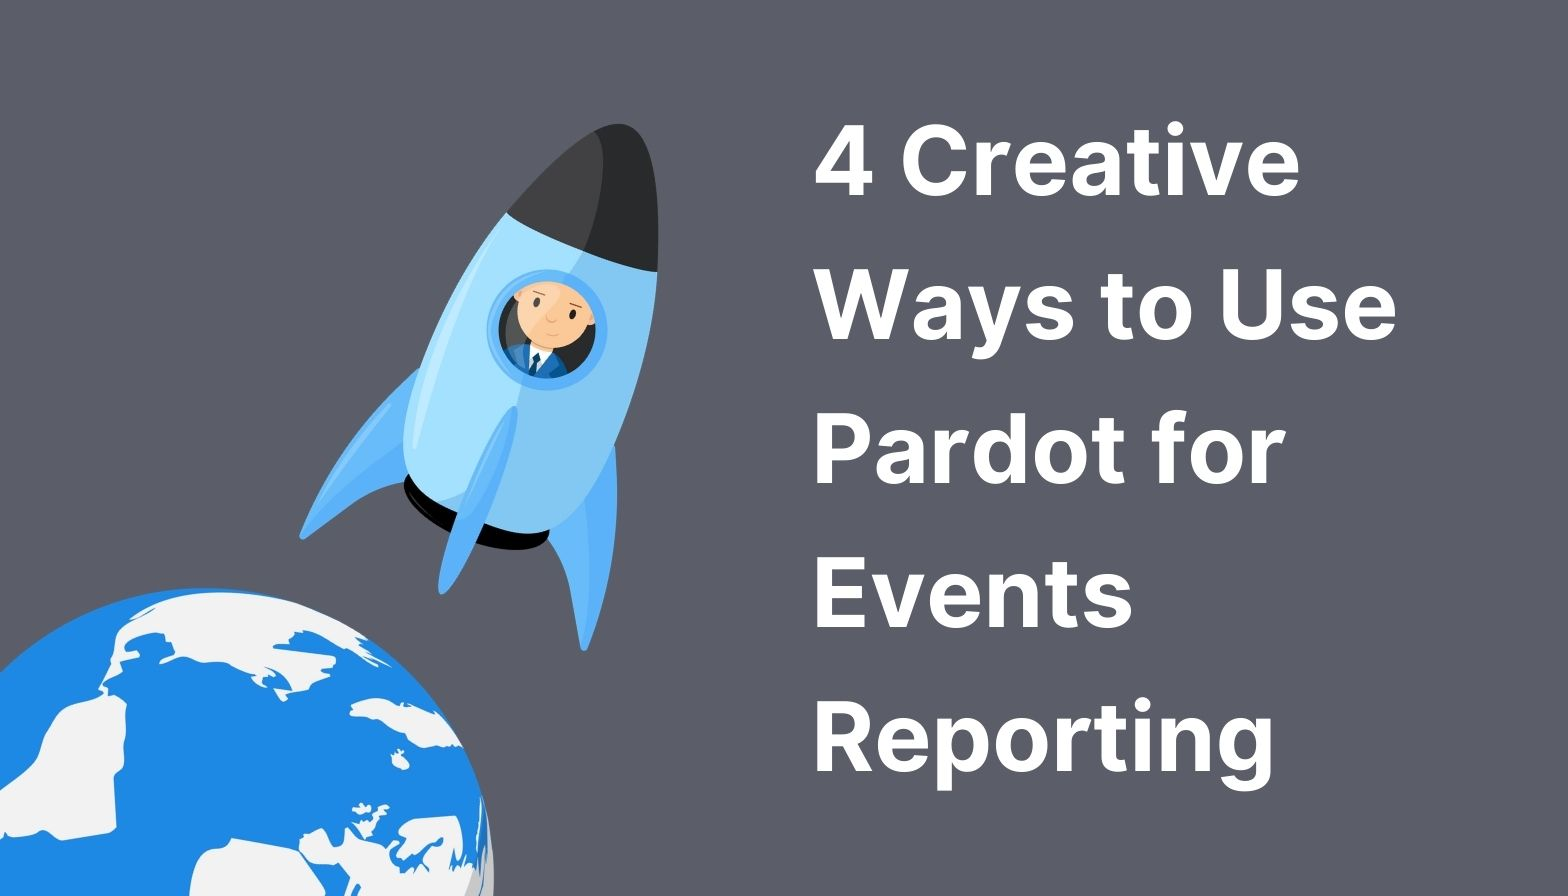 4 Creative Ways for Pardot Events Reporting Blog Feature Image